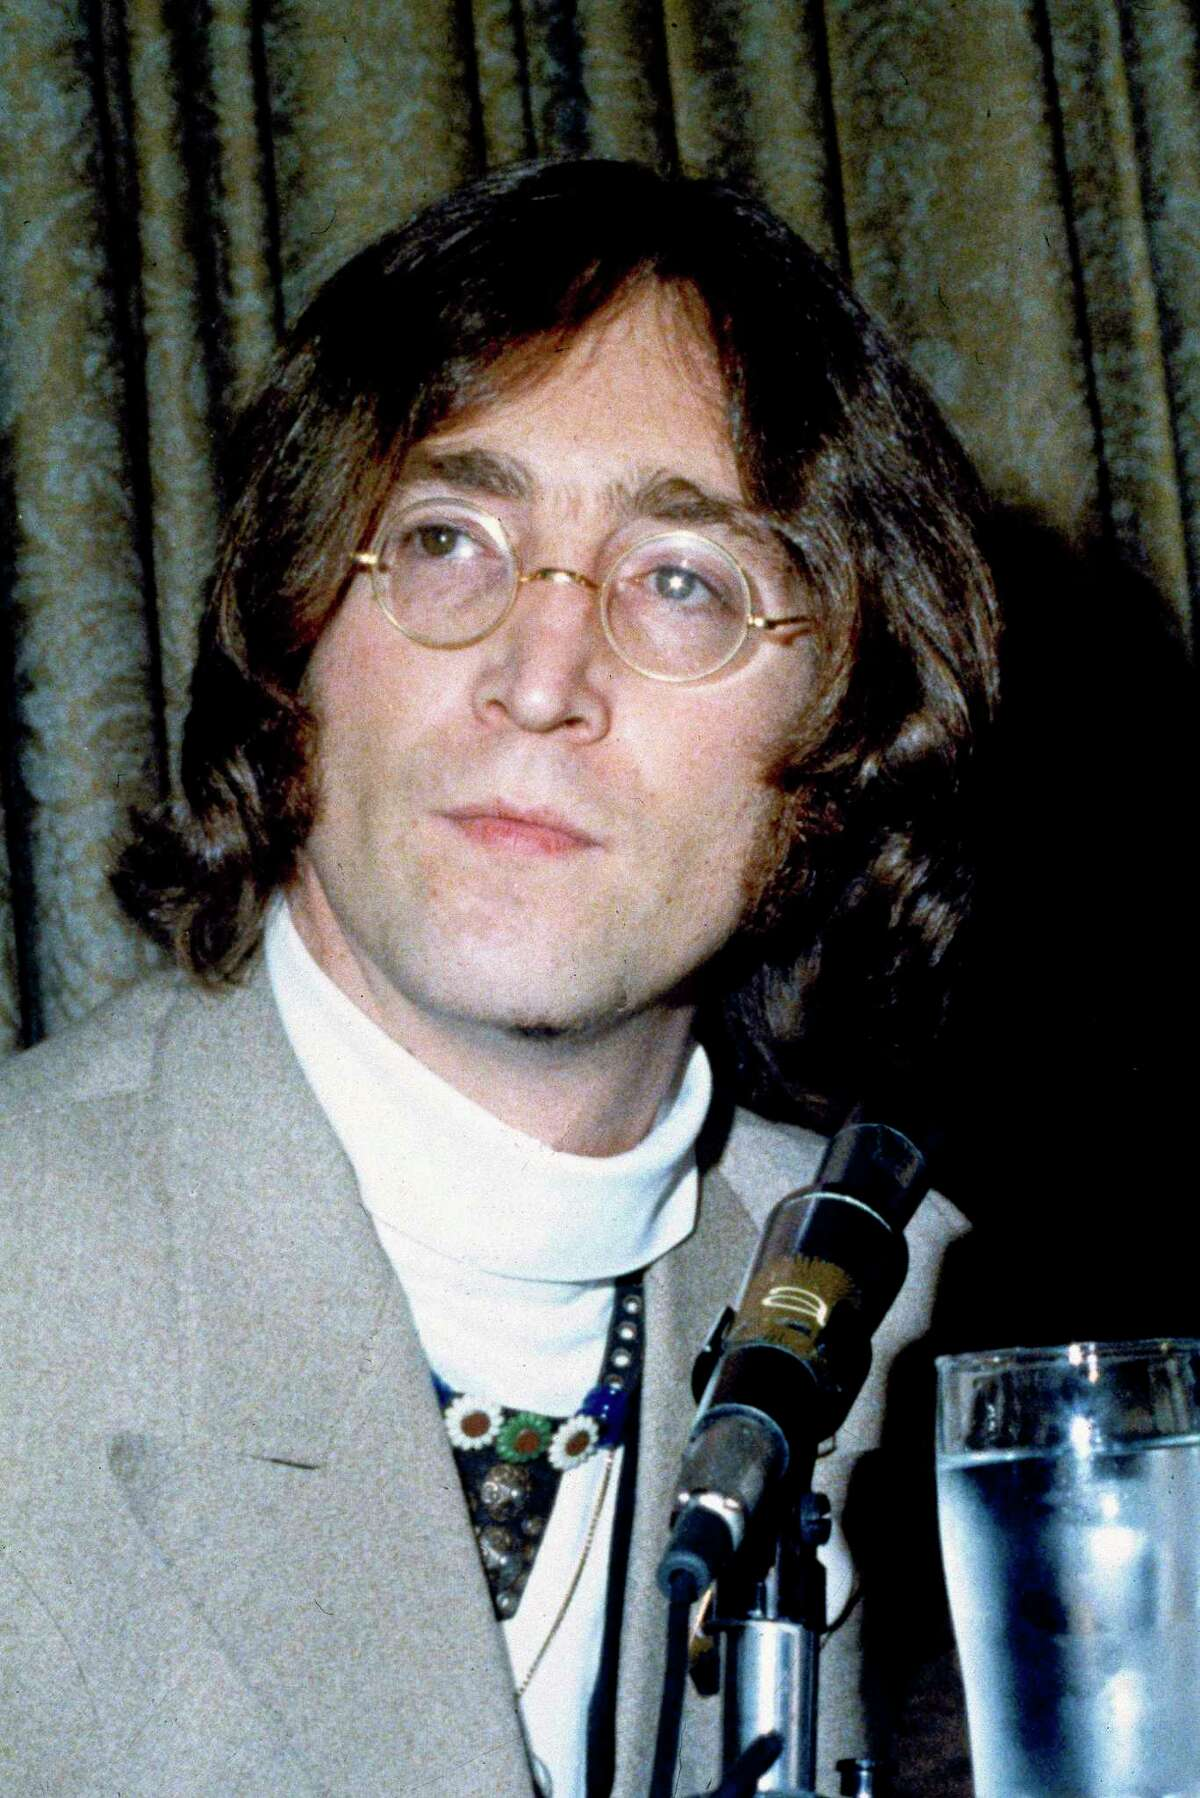 John Lennon is seen at a news conference in 1968. The Friday, Oct. 9, concert was in planning for 14 months as a live concert in Fairfield County, said Rosenay in an email exchange - long before COVID-19 pushed so many such events into a virtual space. The 7 p.m. concert,